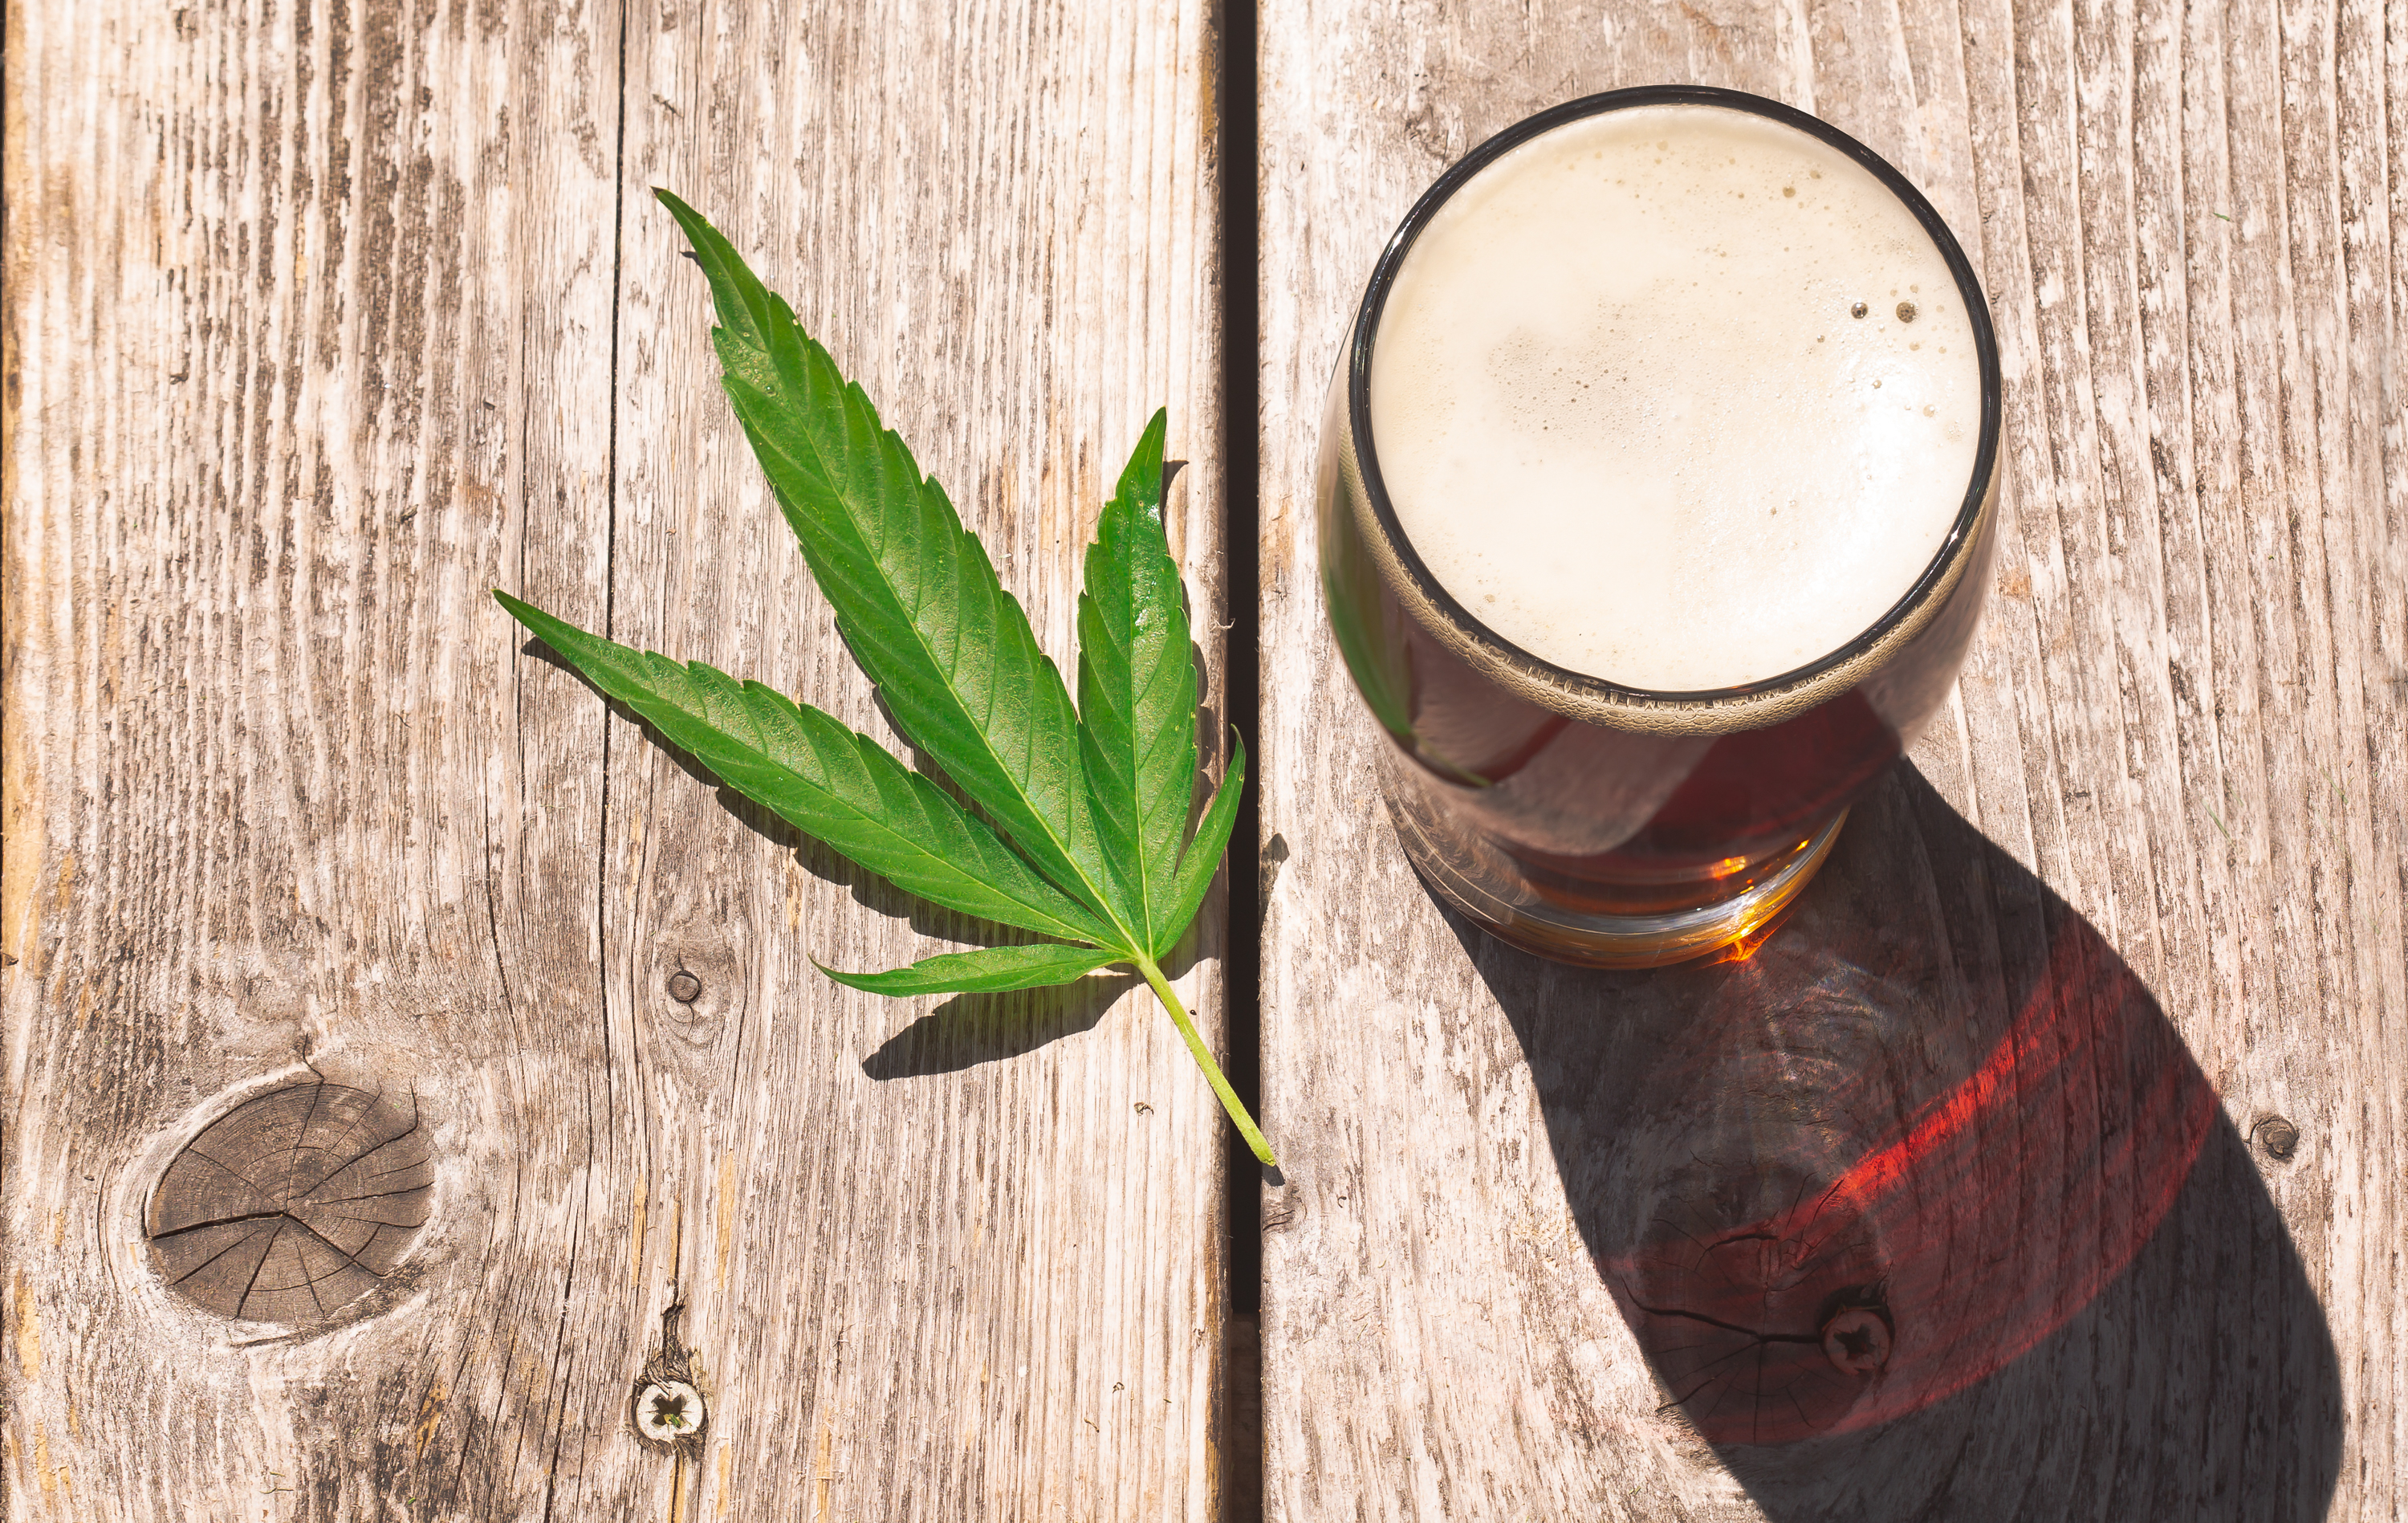 cannabis and alcohol